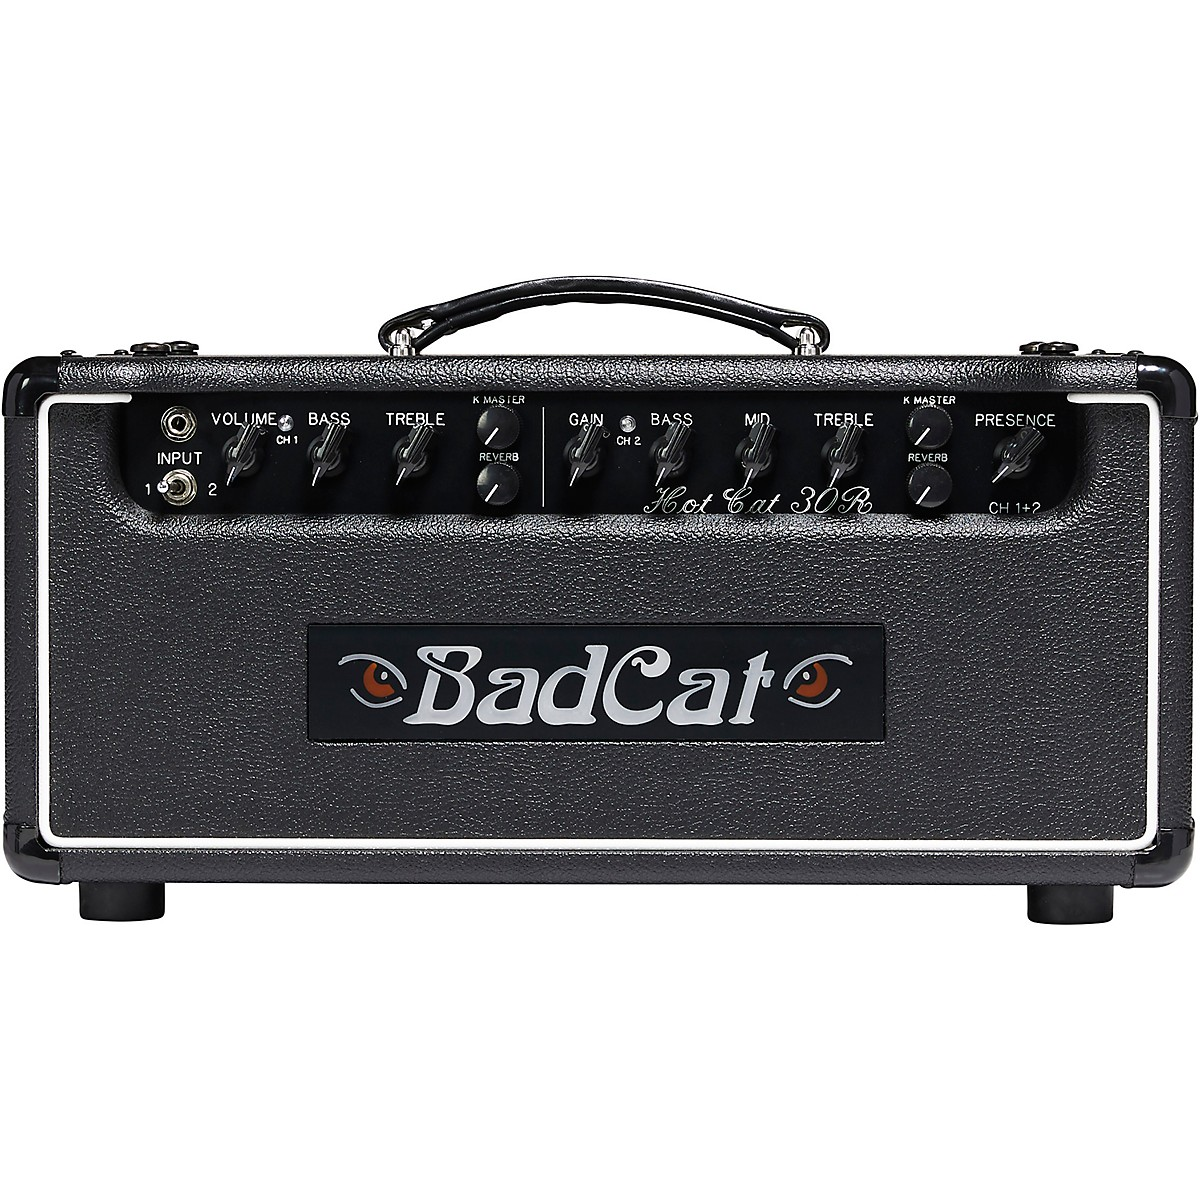 Bad Cat Hot Cat 30R USA Player Series 30 Watt Head